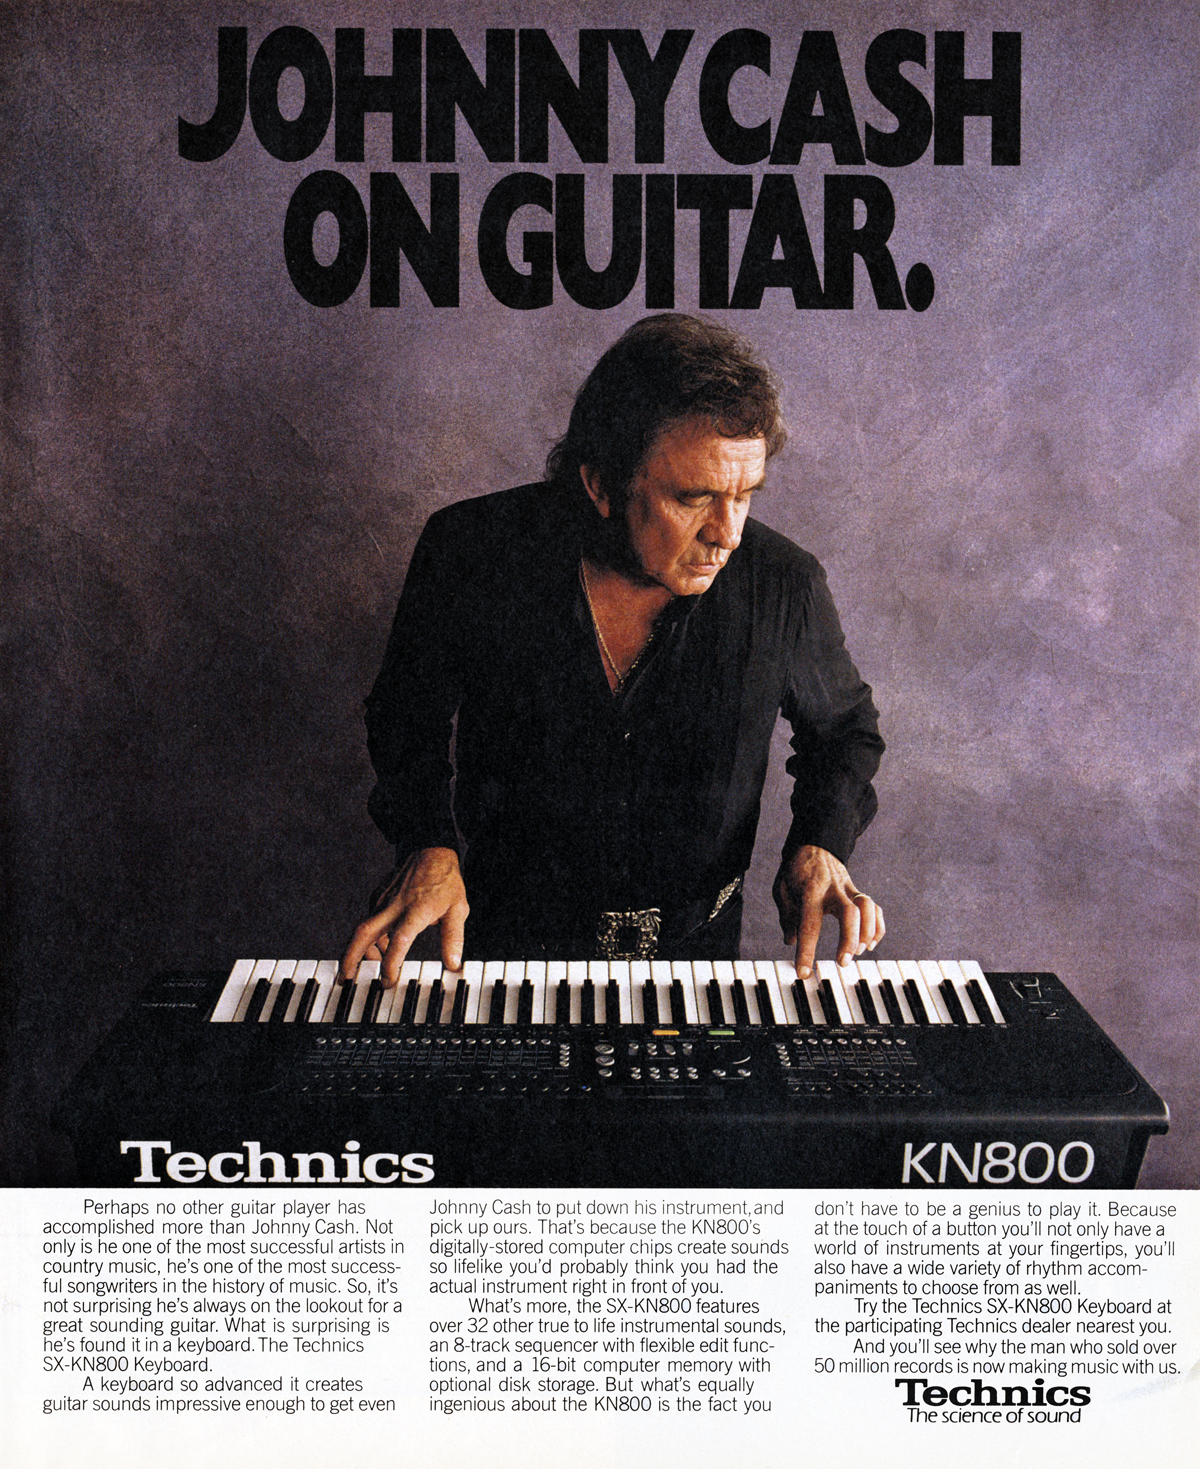 Technics featuring Johnny Cash - 1990